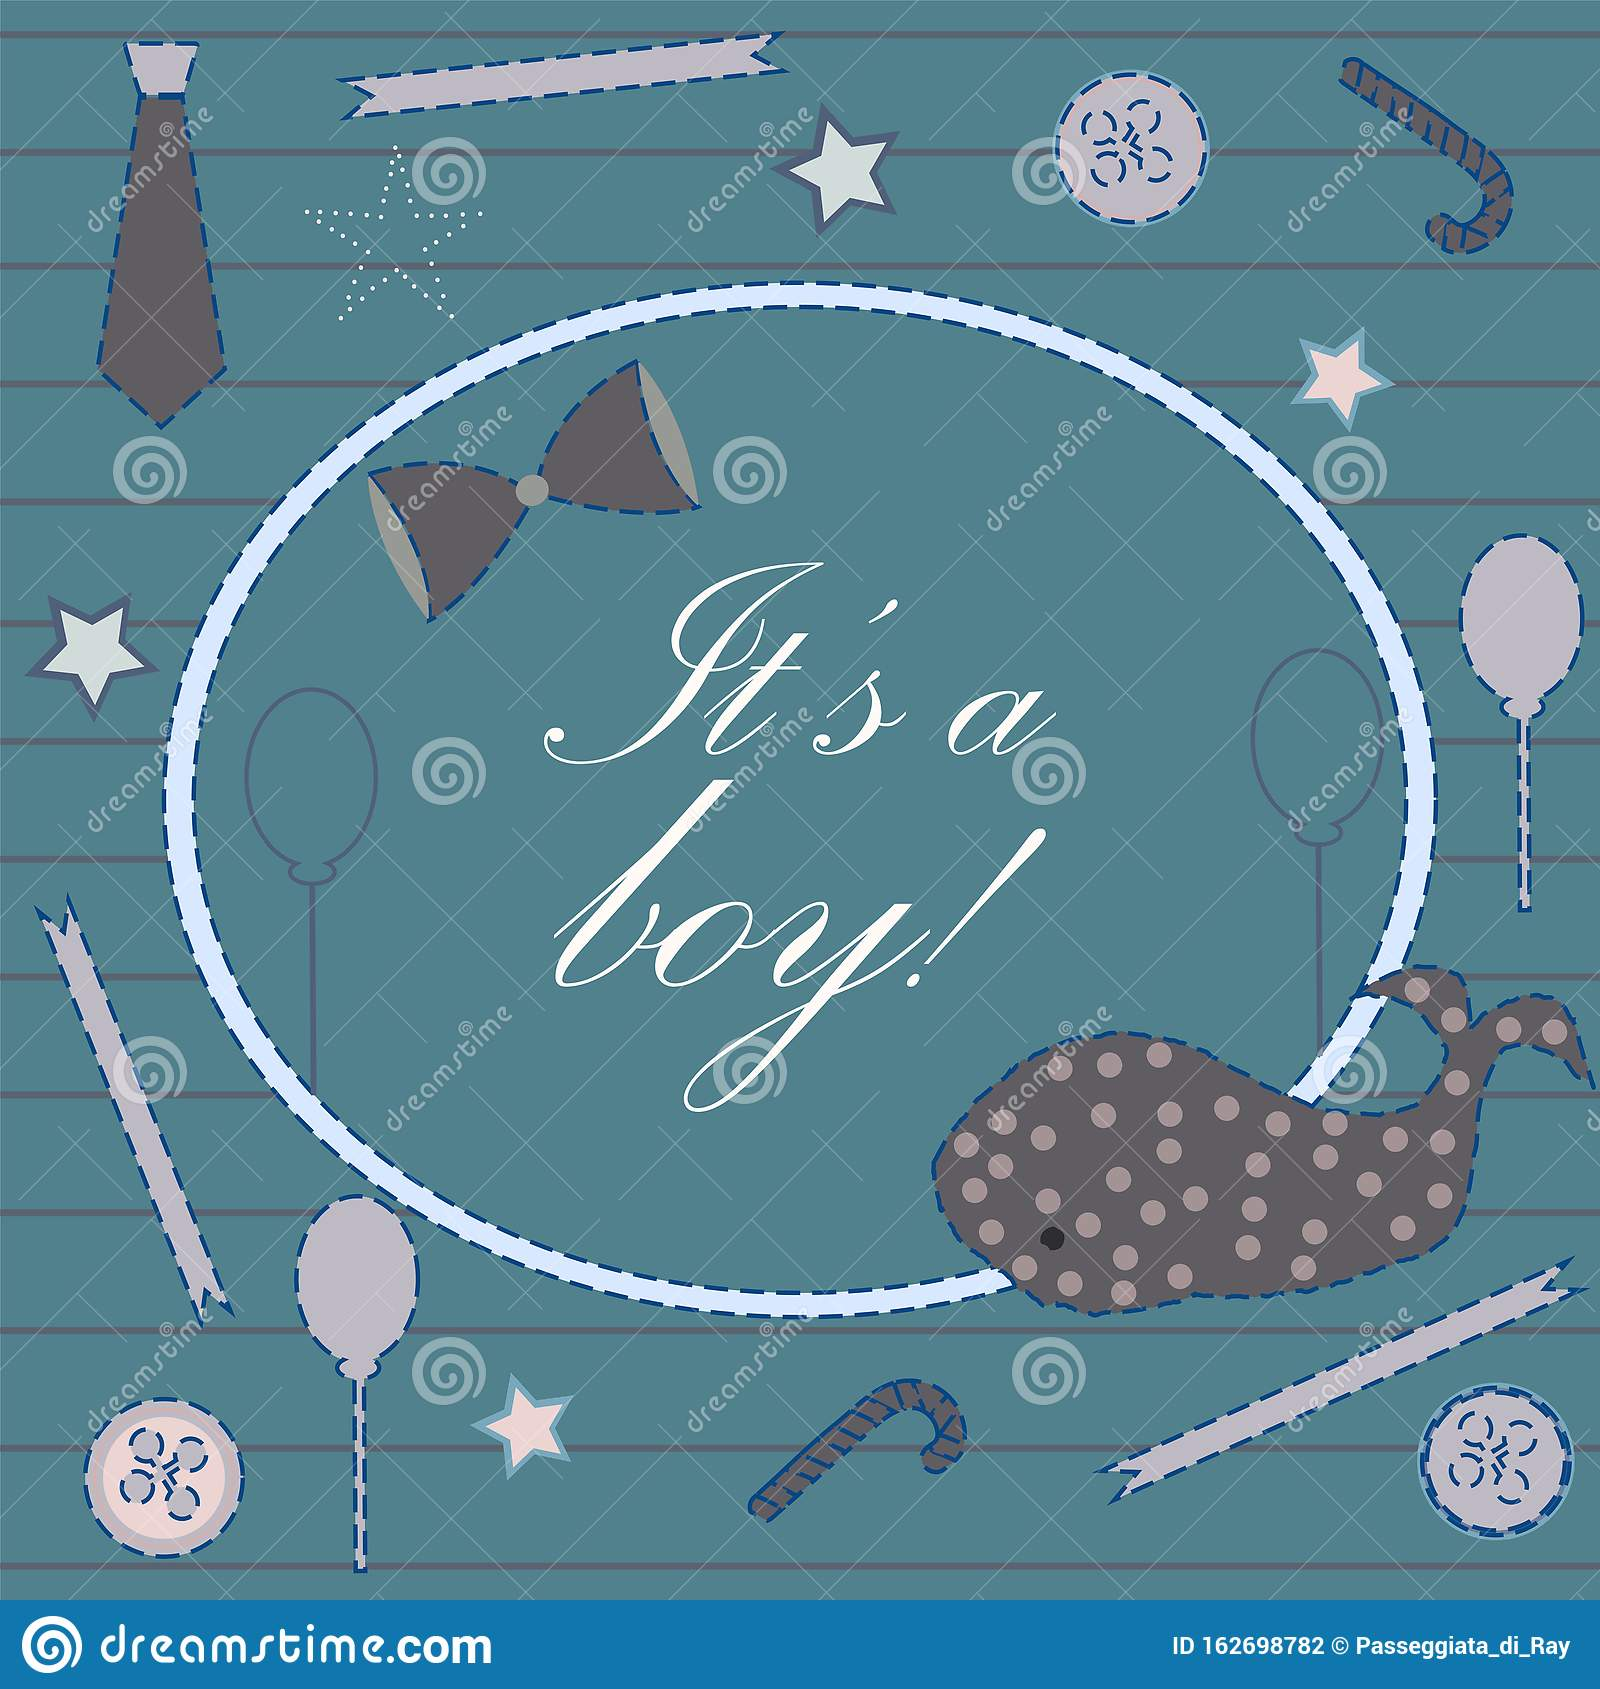 Baby Boy Birth Announcement Baby Shower Invitation Card Stock Illustration Illustration Of Happy Background 162698782